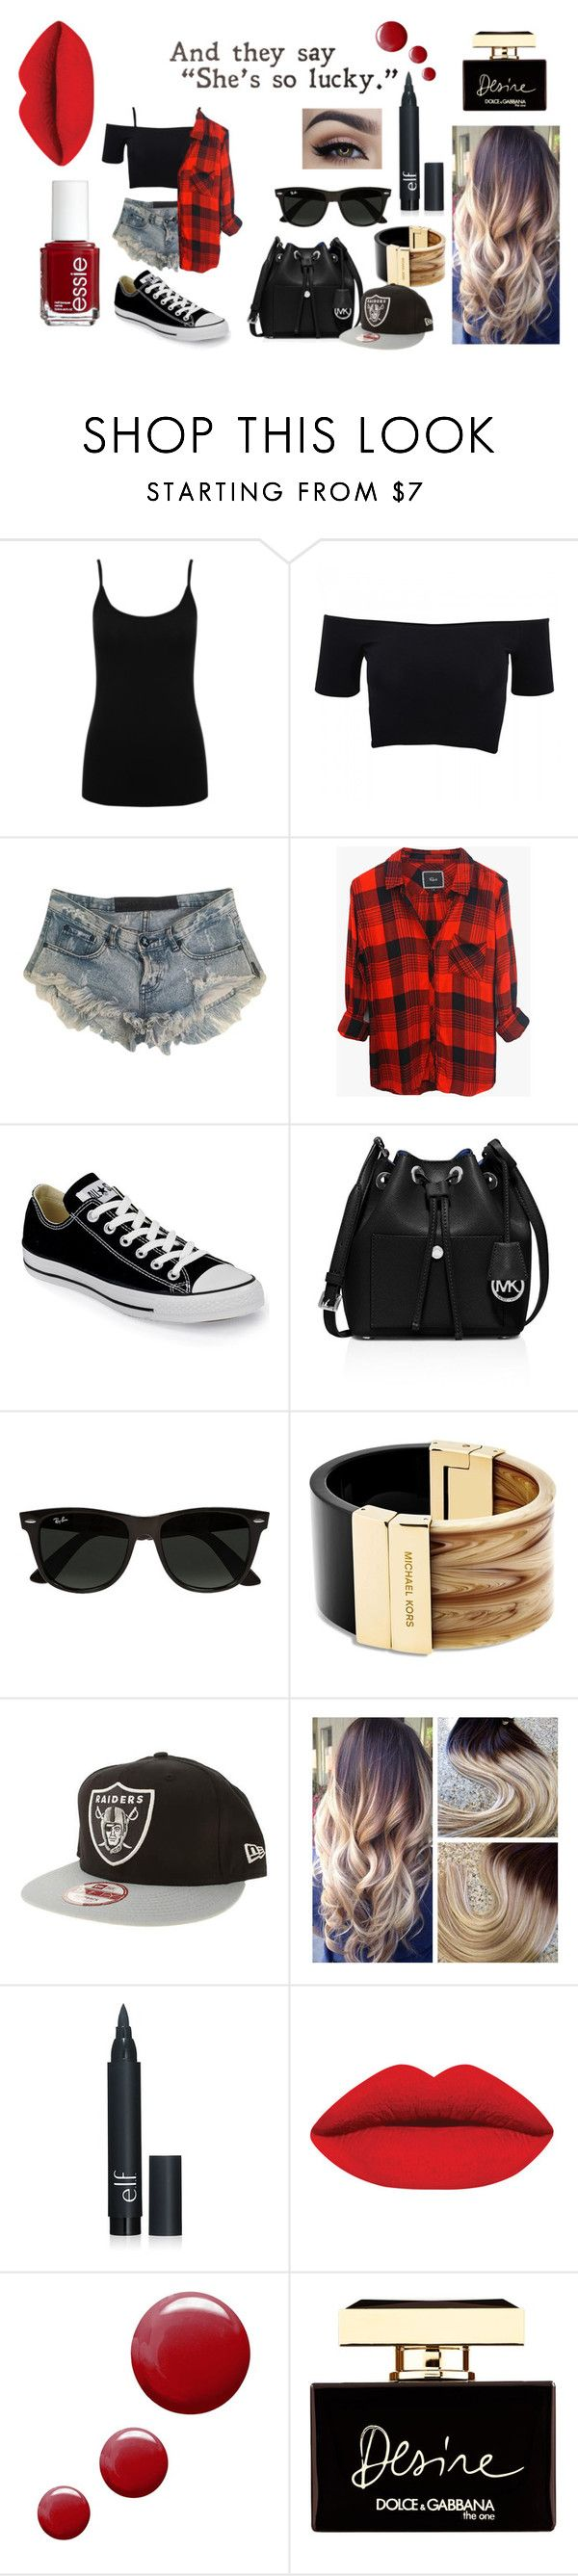 """basic"" by veeruska-1 on Polyvore featuring M&Co, American Apparel, One Teaspoon, Rails, Converse, MICHAEL Michael Kors, Ray-Ban, Michael Kors, New Era and Essie"